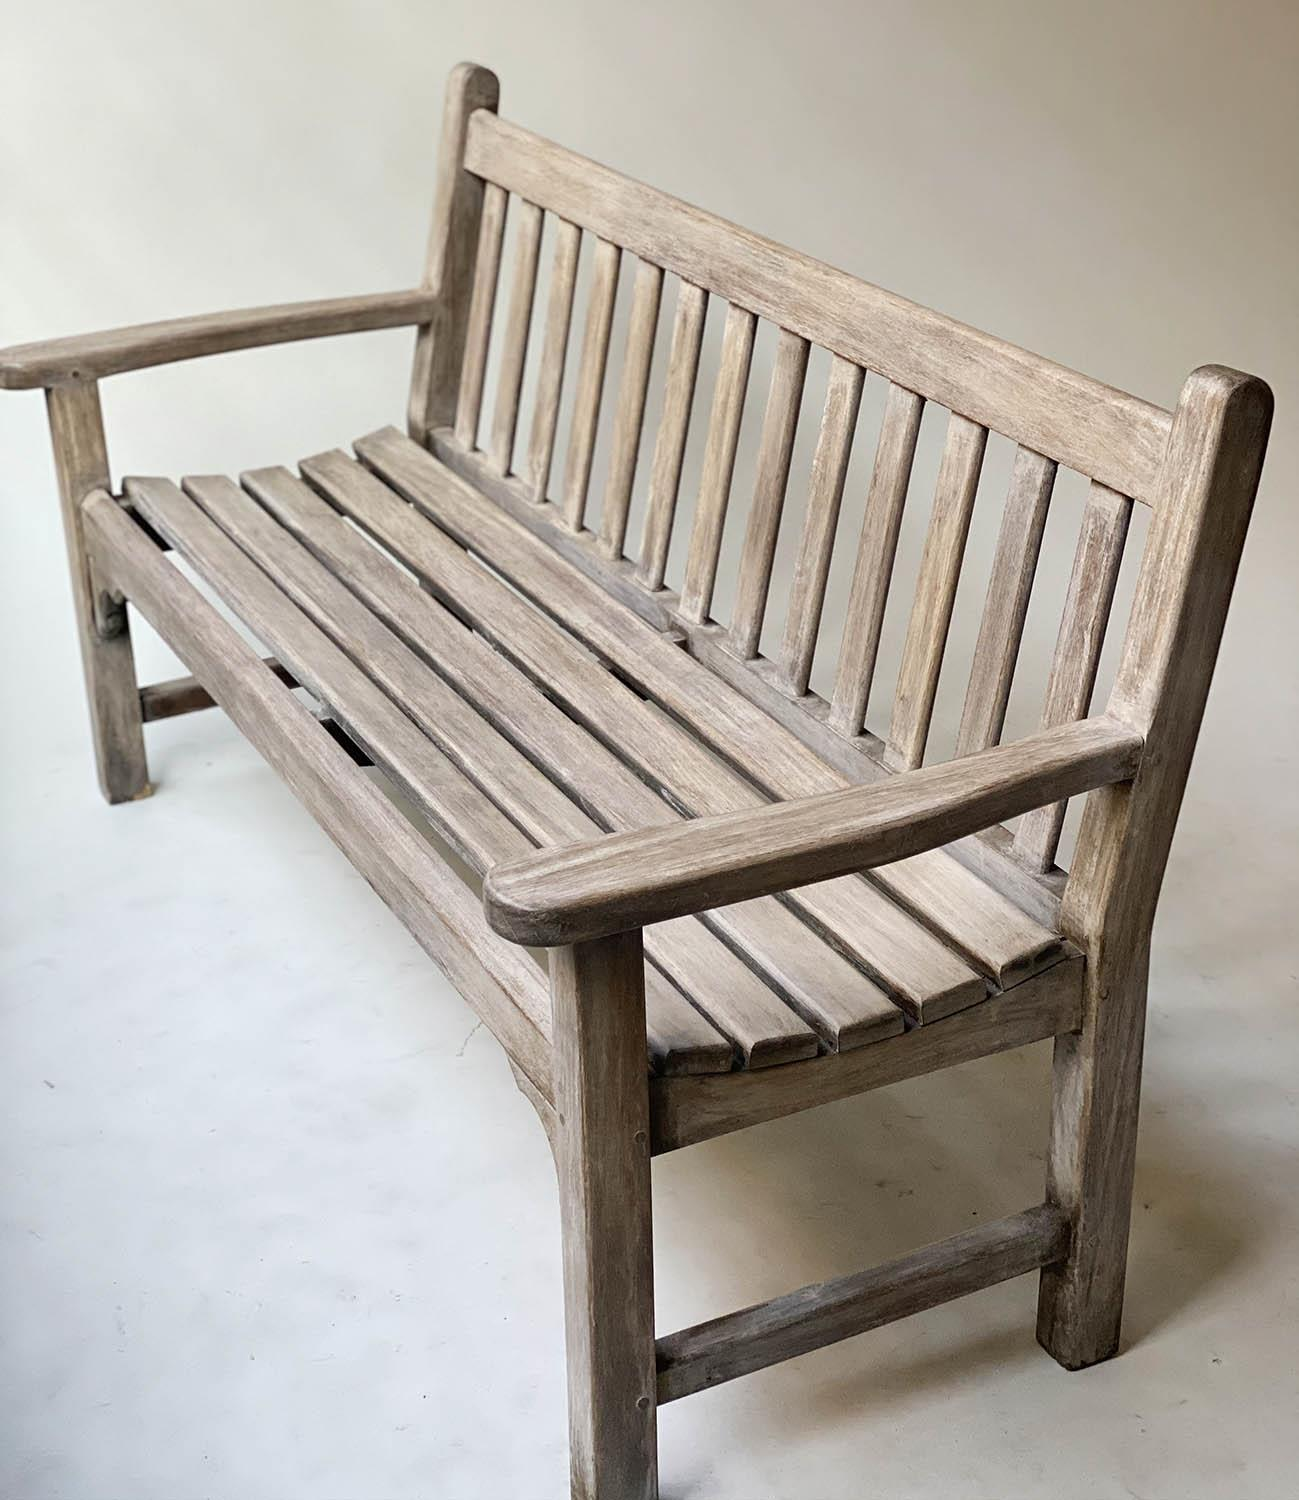 GARDEN BENCH, weathered teak of slatted construction with flat top arms, 160cm W. - Image 3 of 6